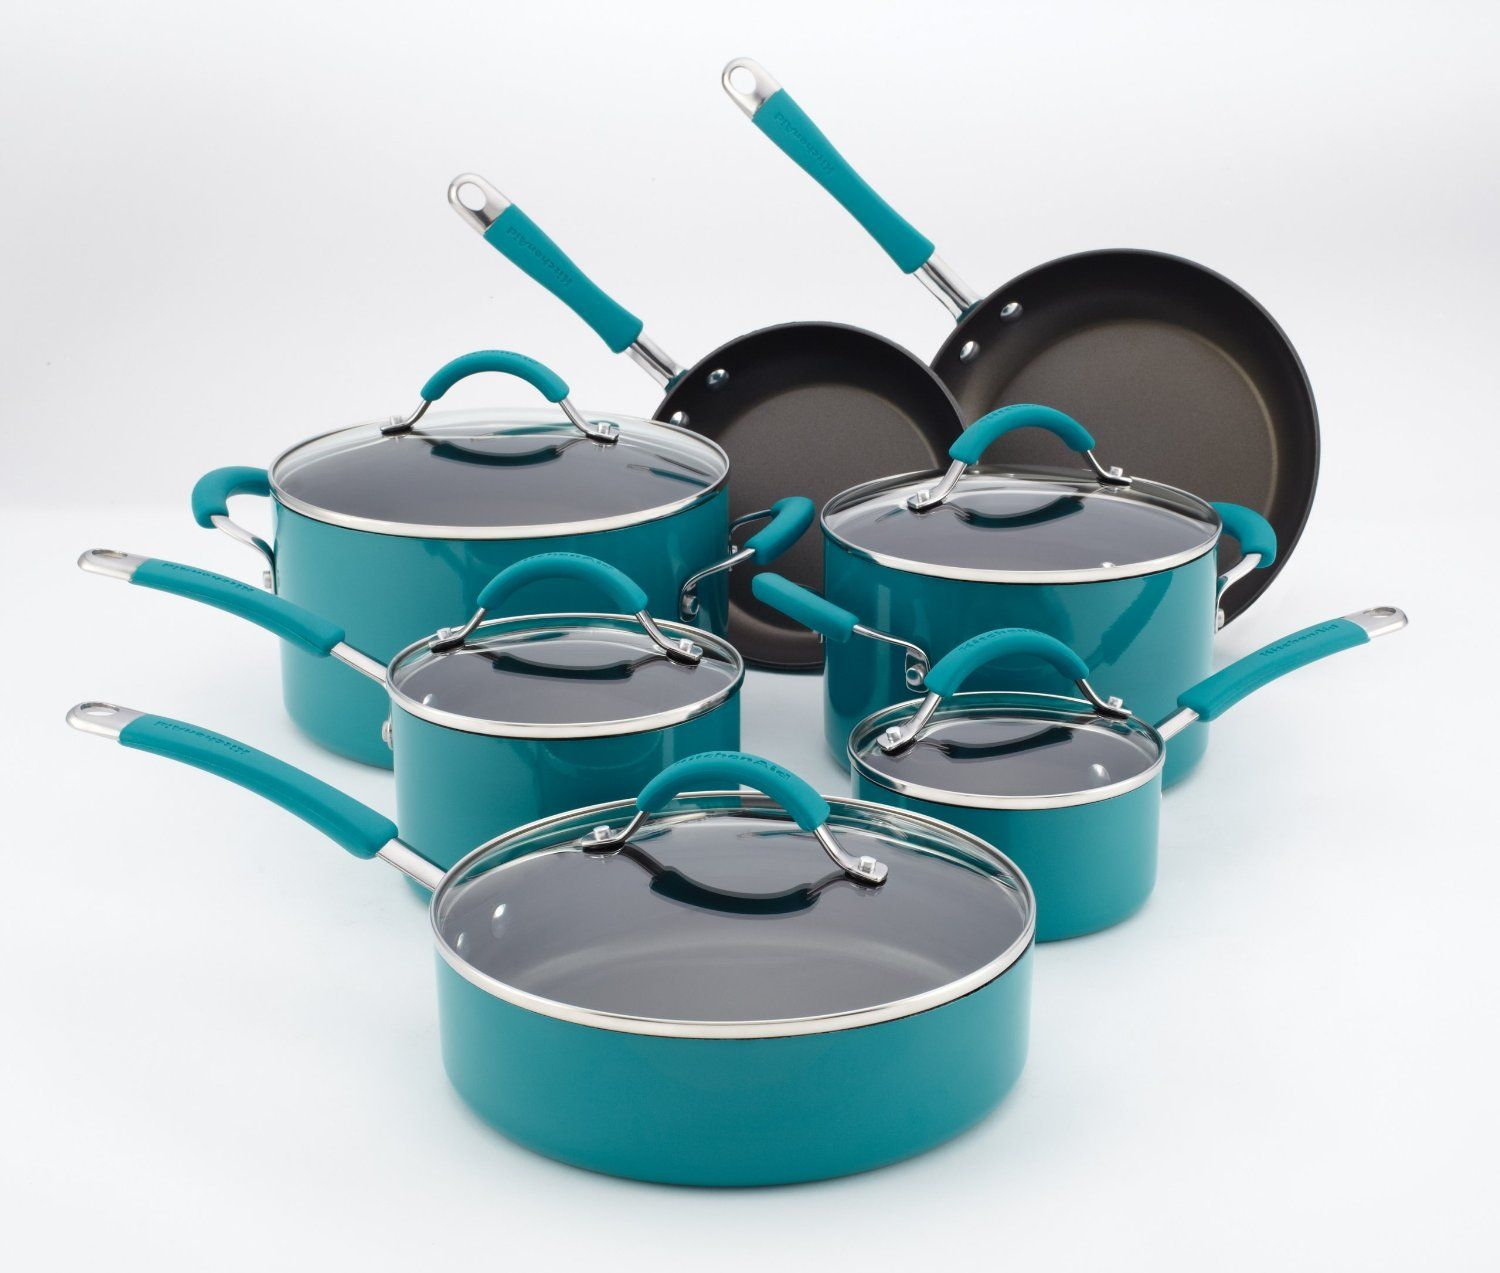 Amazon.com: KitchenAid Aluminum Nonstick 12-Piece Cookware Set ...